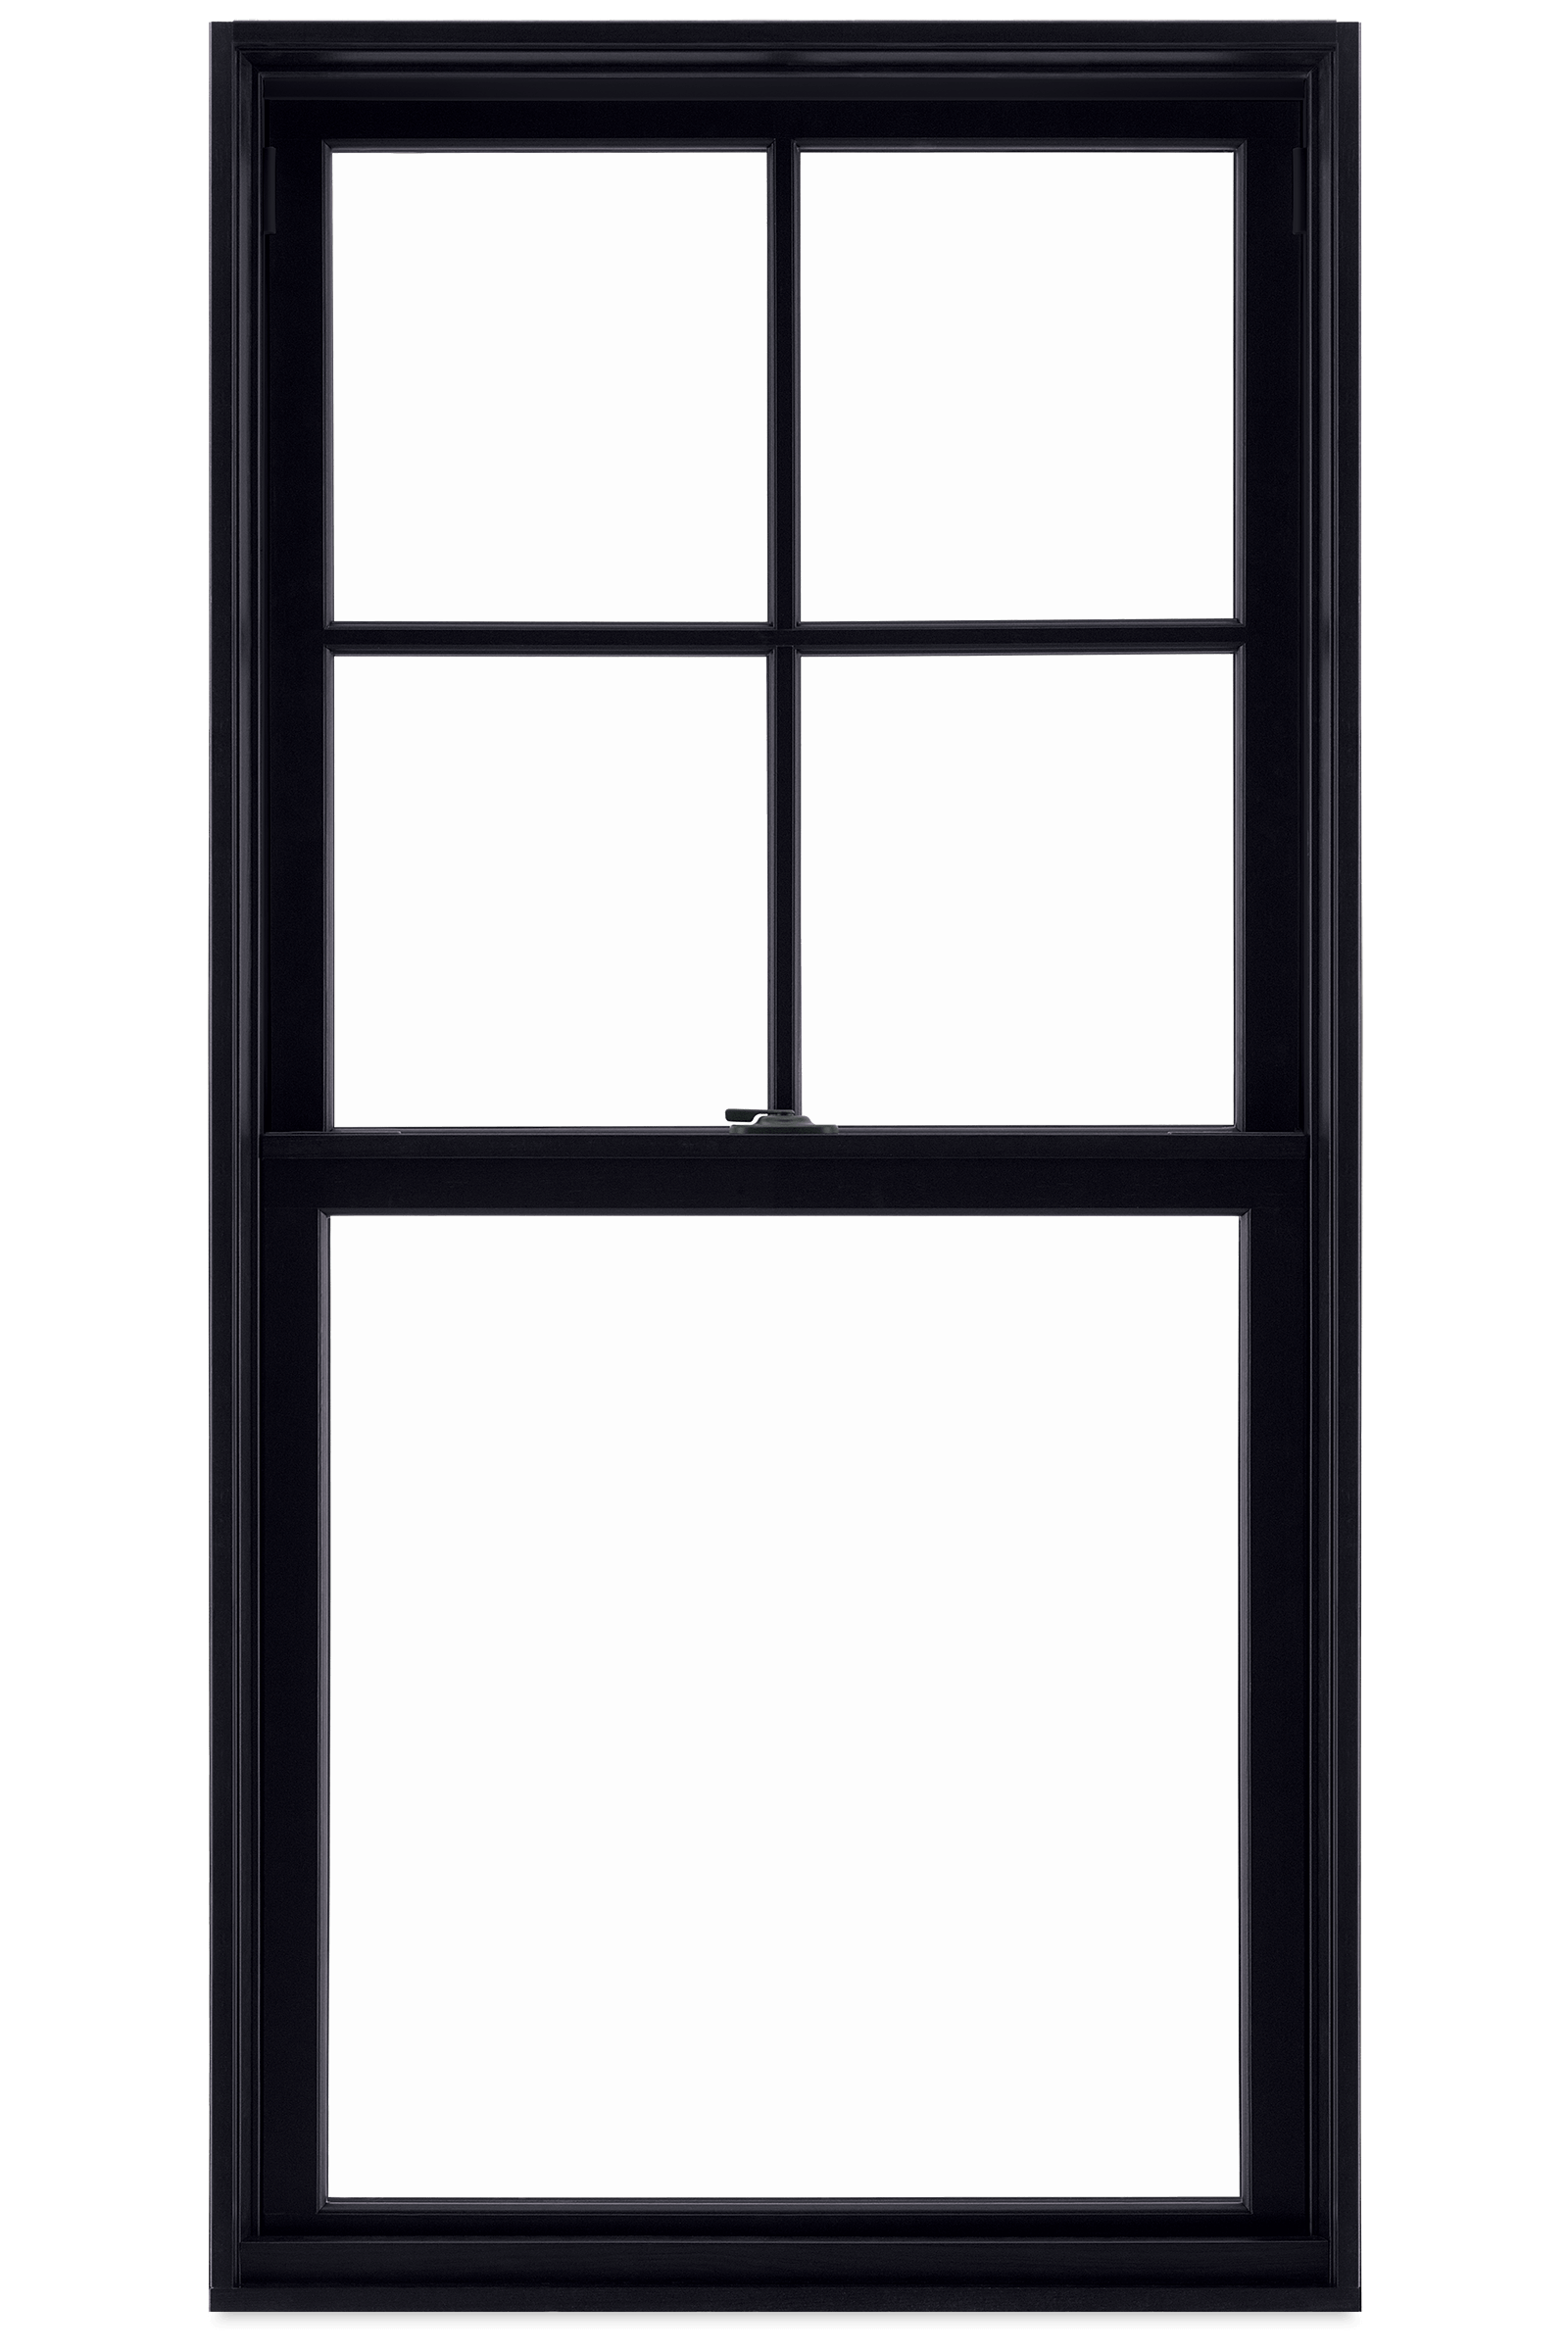 Marvin Elevate Double Hung Window Interior View